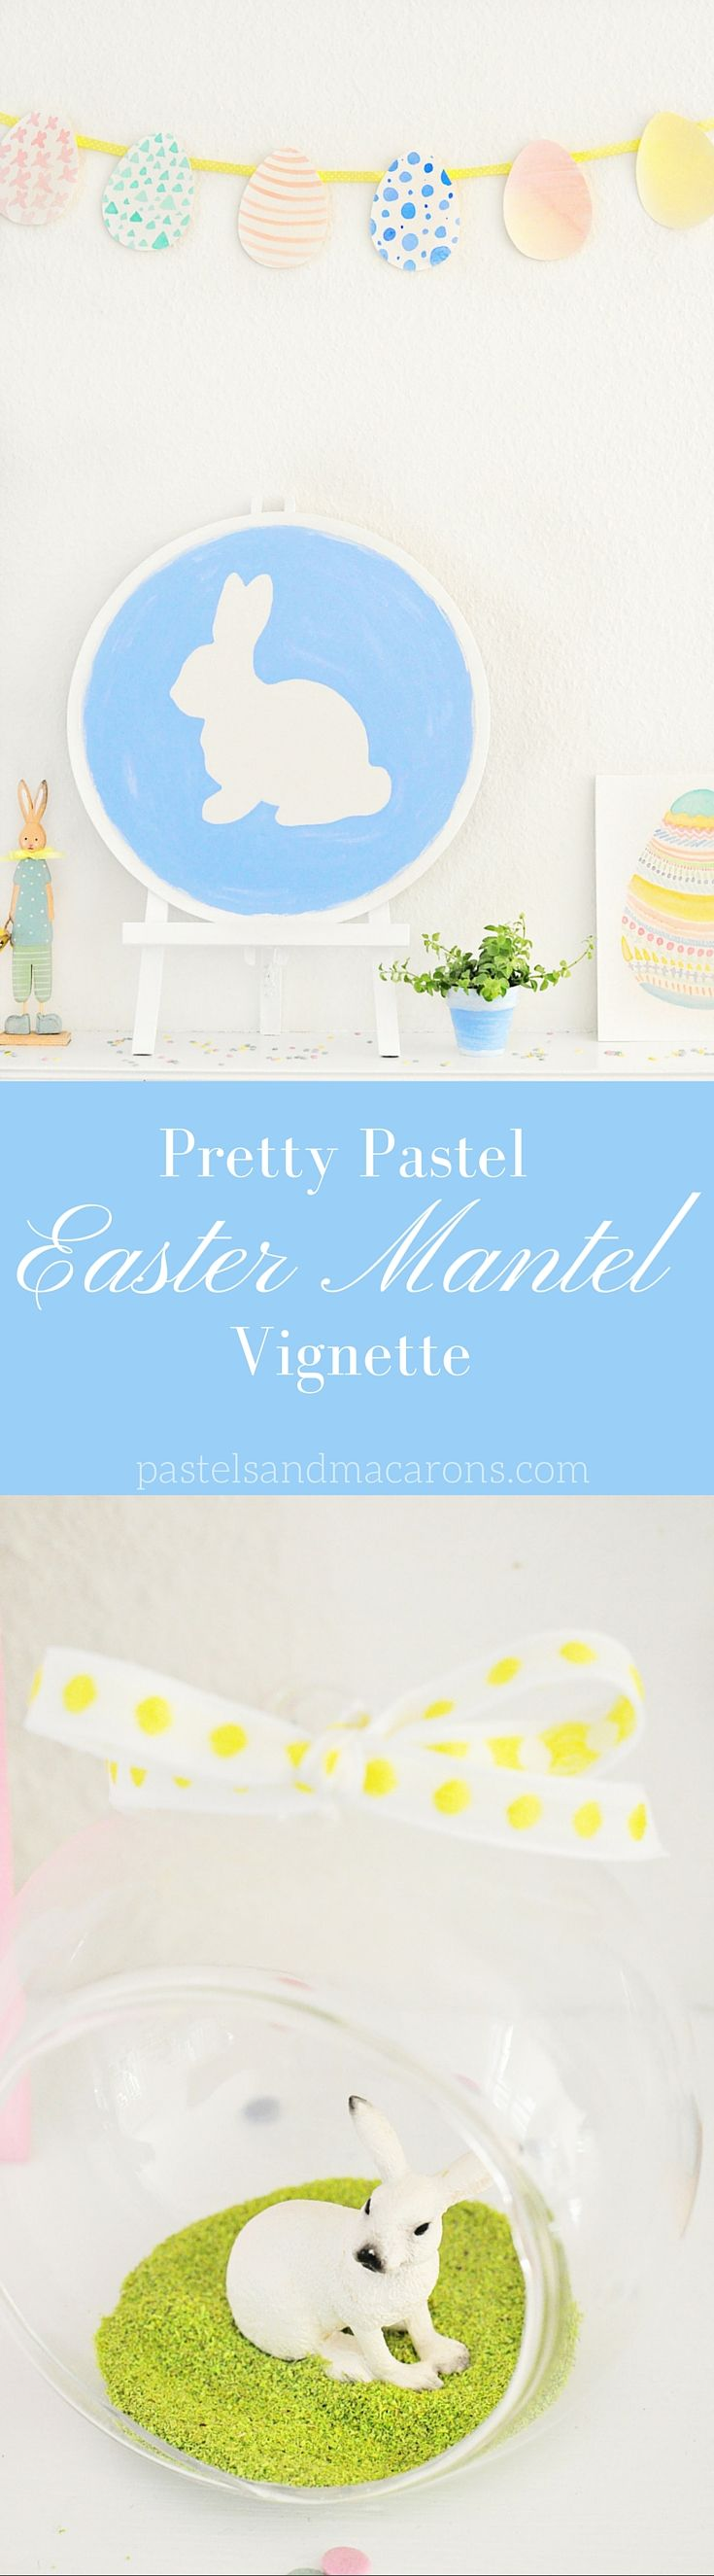 46 best easter images on pinterest easter crafts easter ideas and